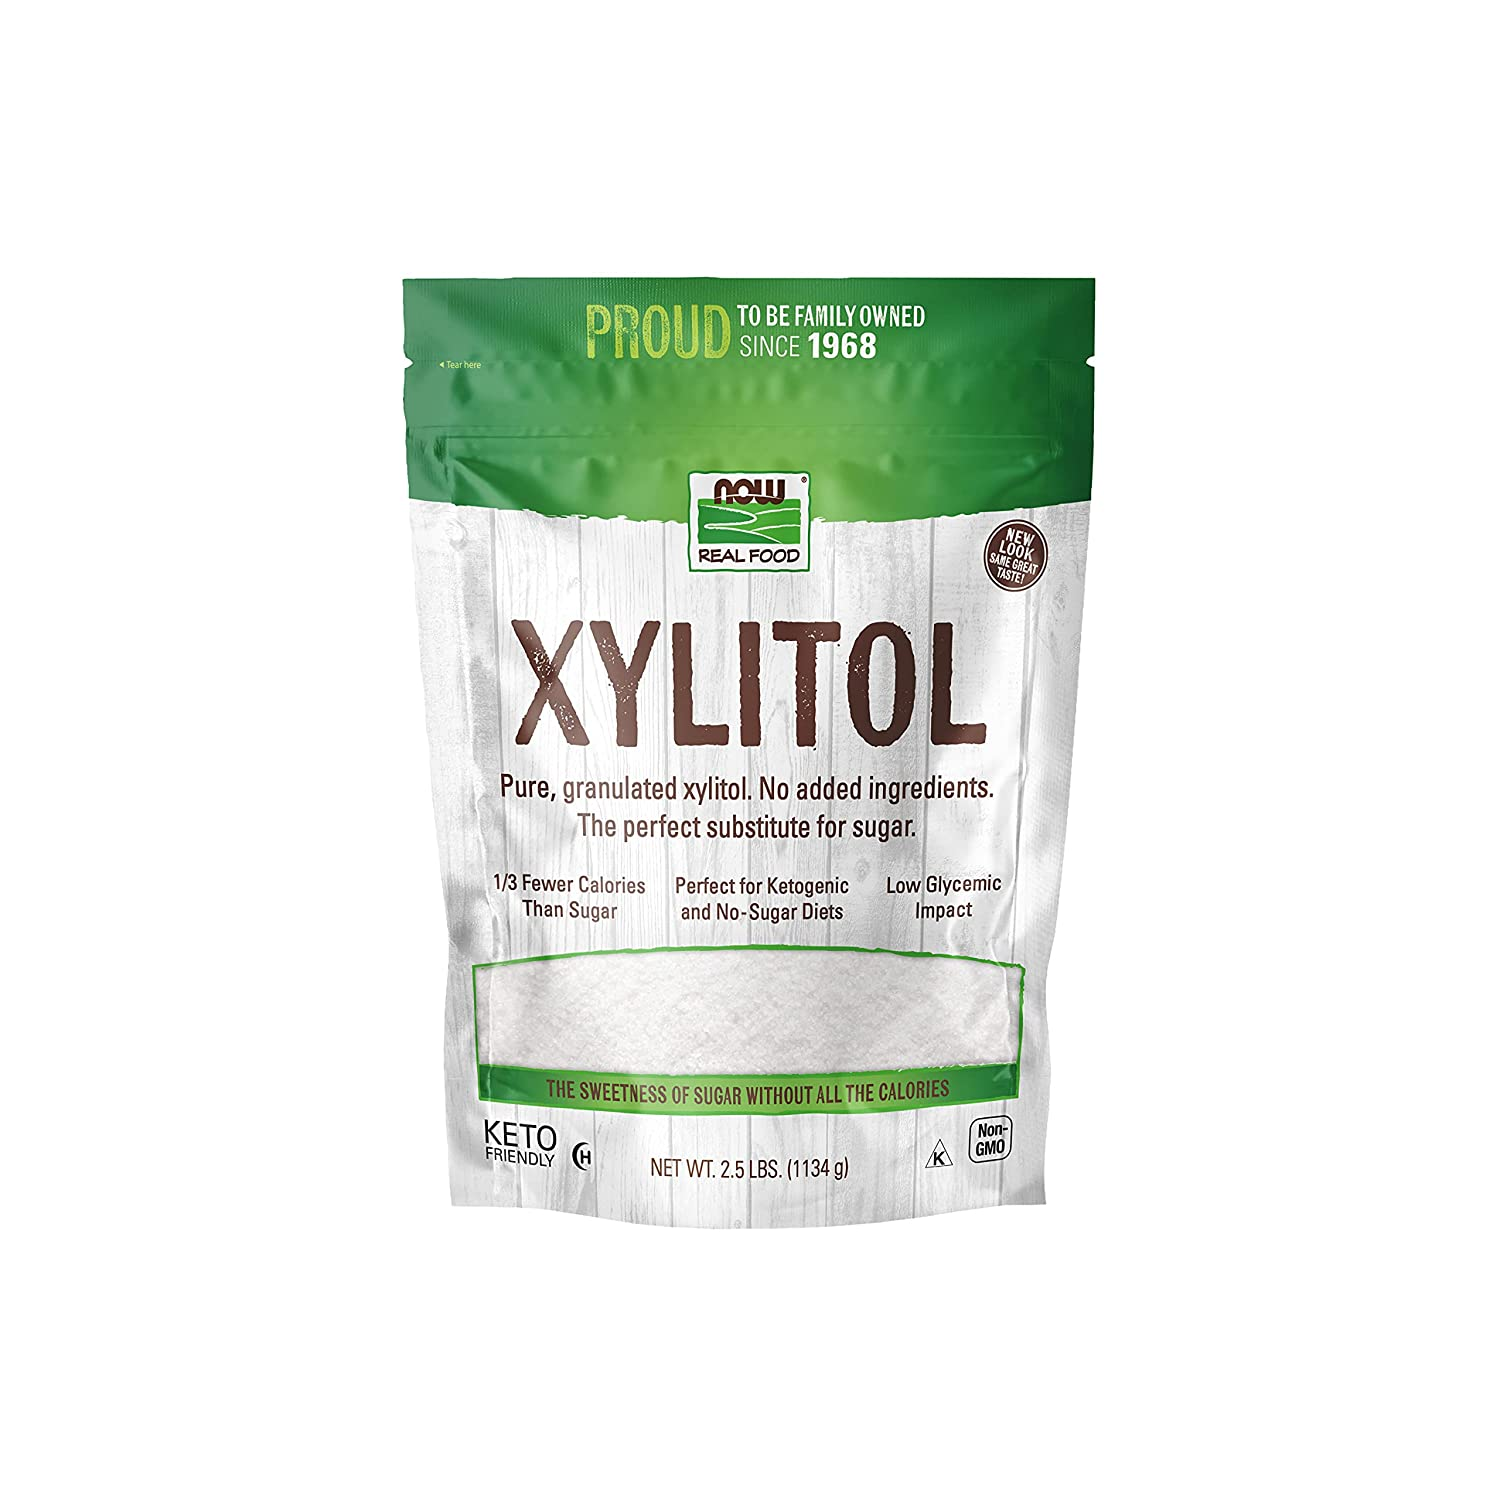 NOW Natural Foods Xylitol Pure Keto Max 78% OFF No Ranking TOP10 Added Ingredients with